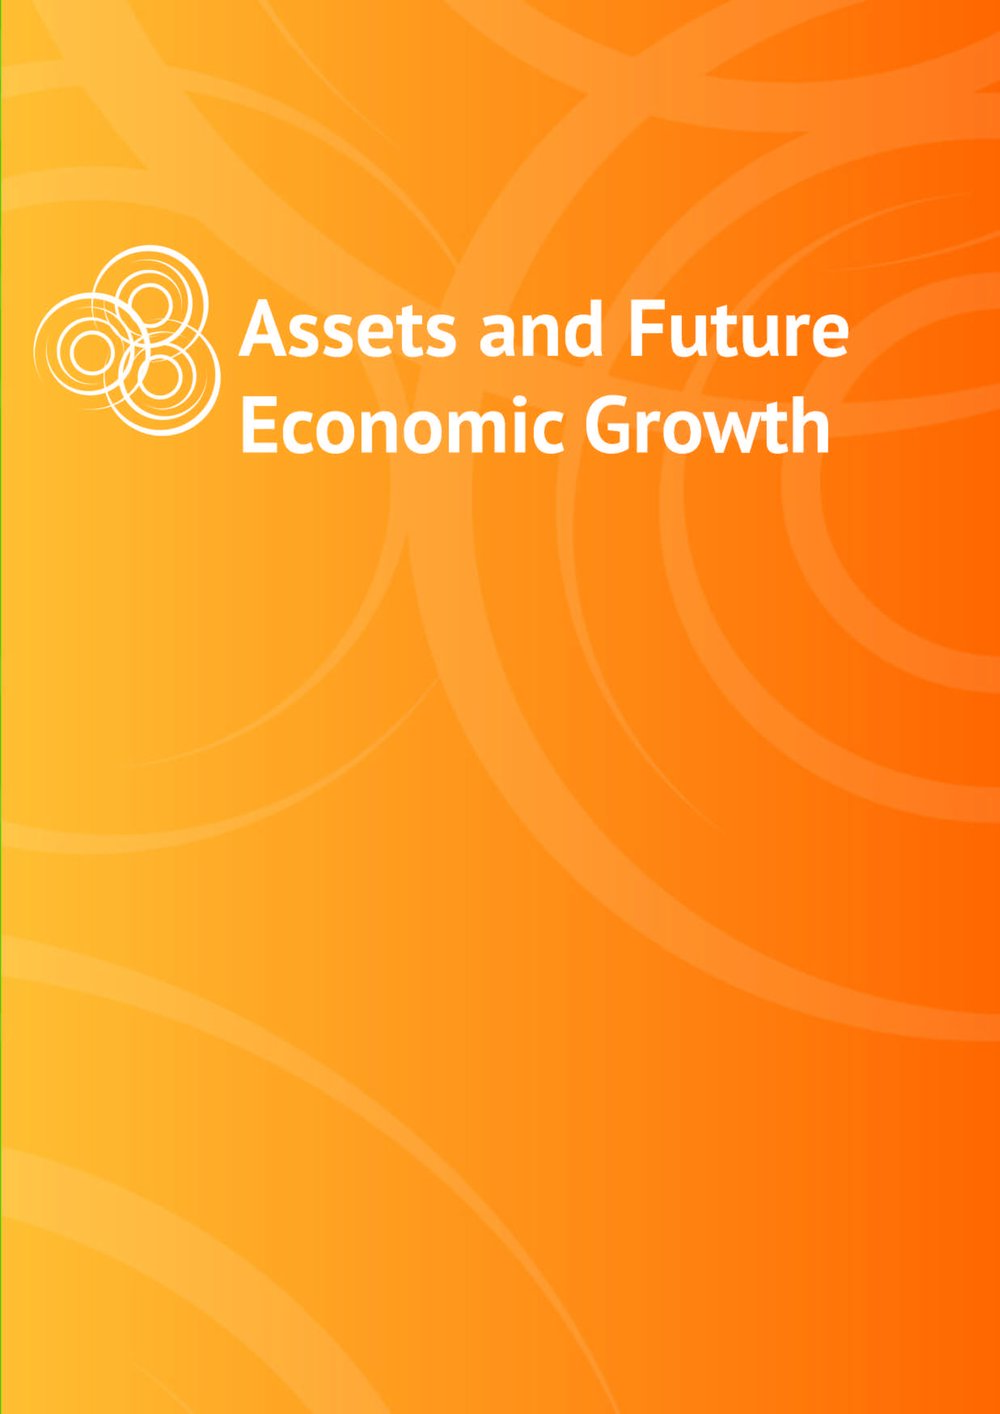 Assets & Future Growth